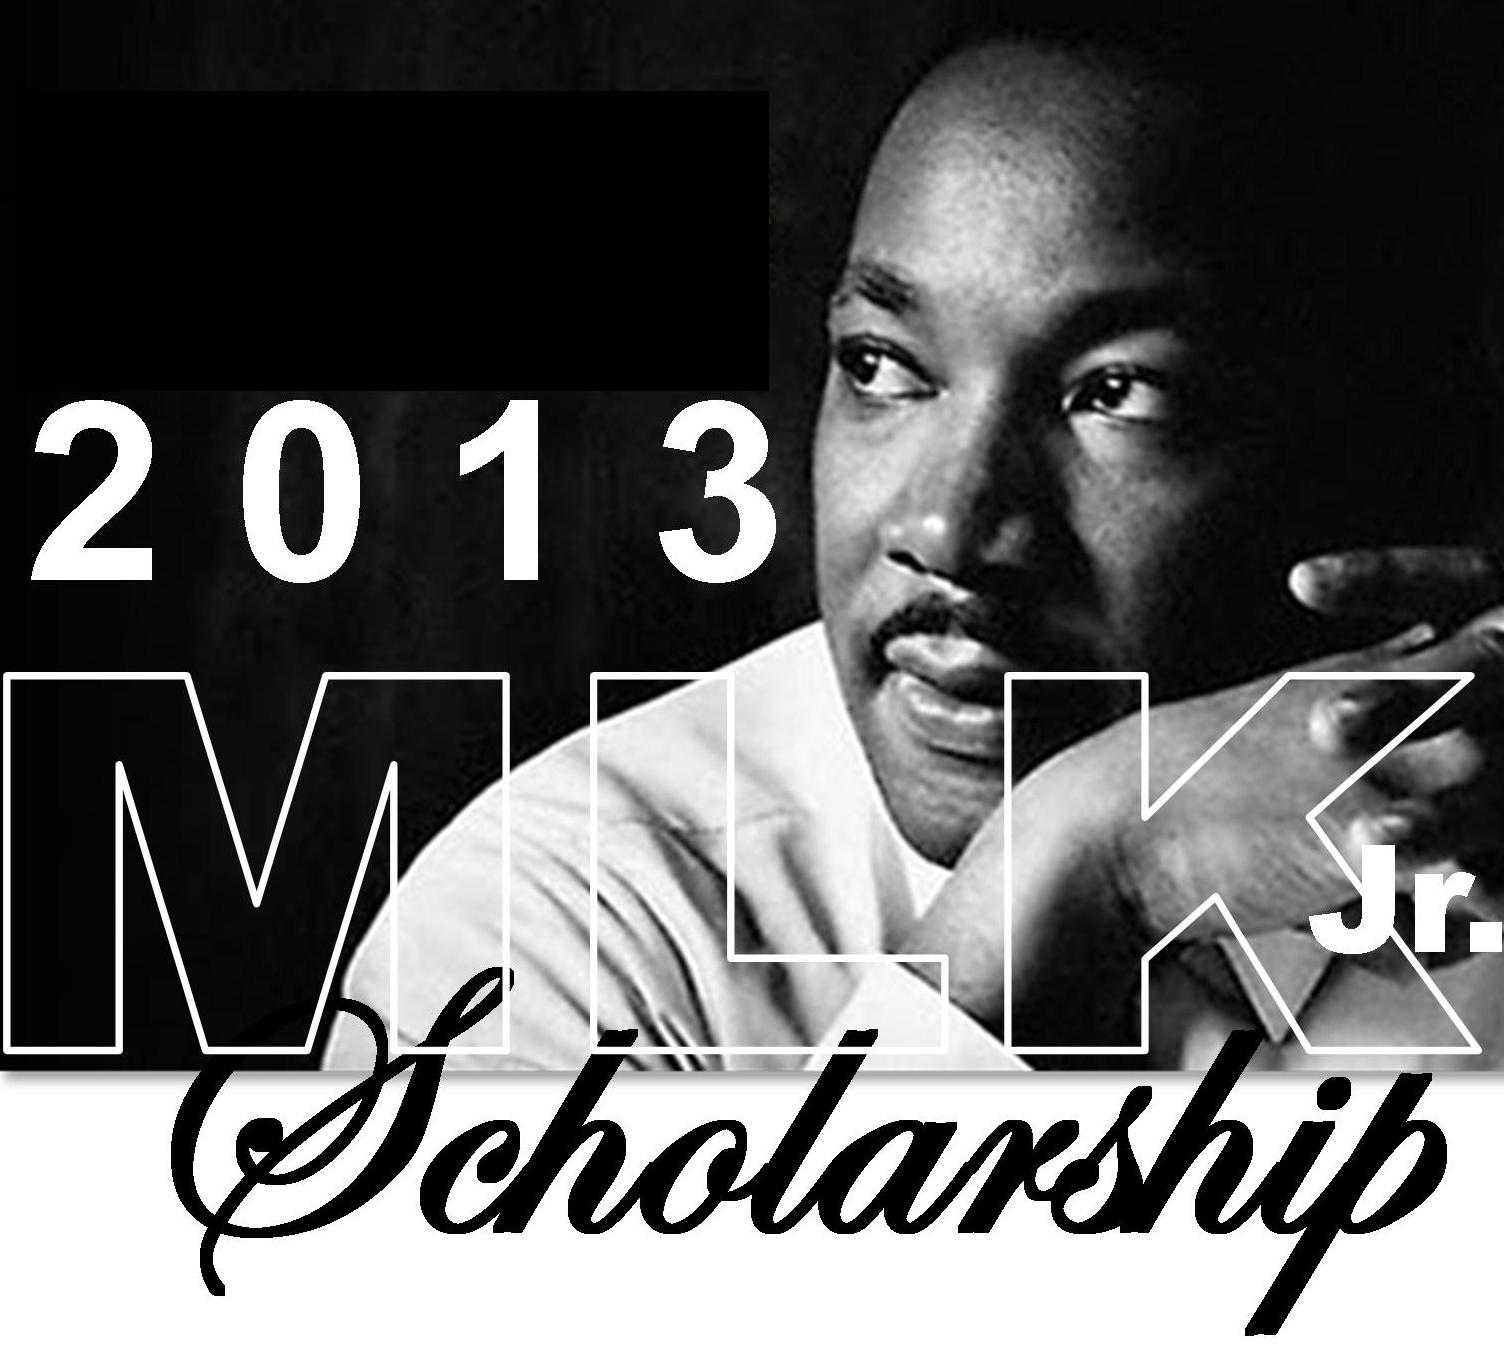 Free Download Martin Luther King Jr Wallpaper 1504x1363 For Your